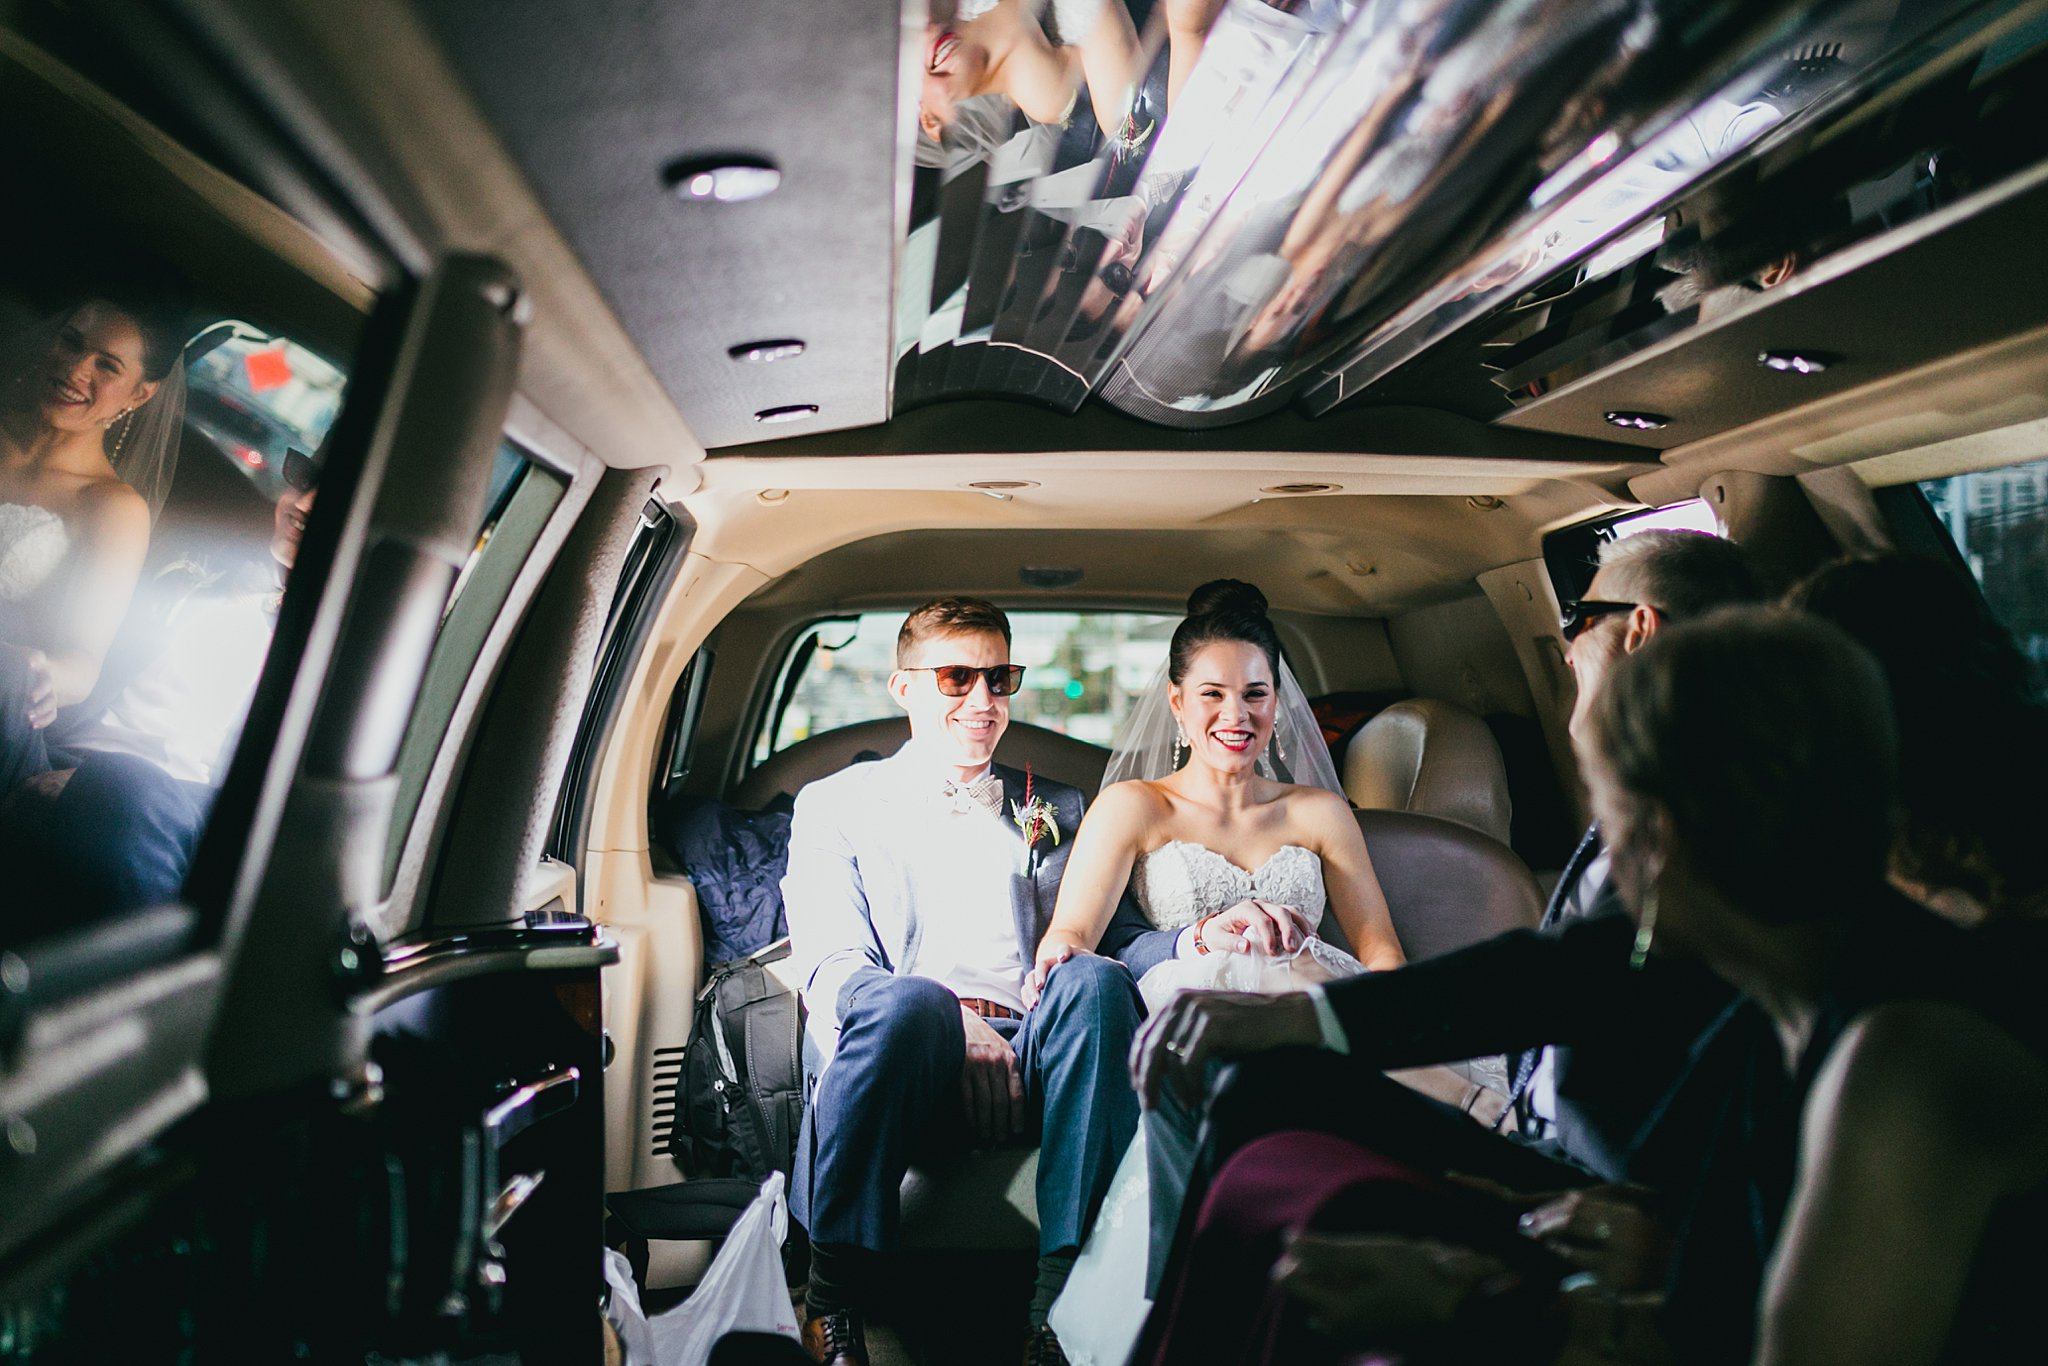 Atlanta Wedding Photographers Love & Story Bride and Groom in Limo